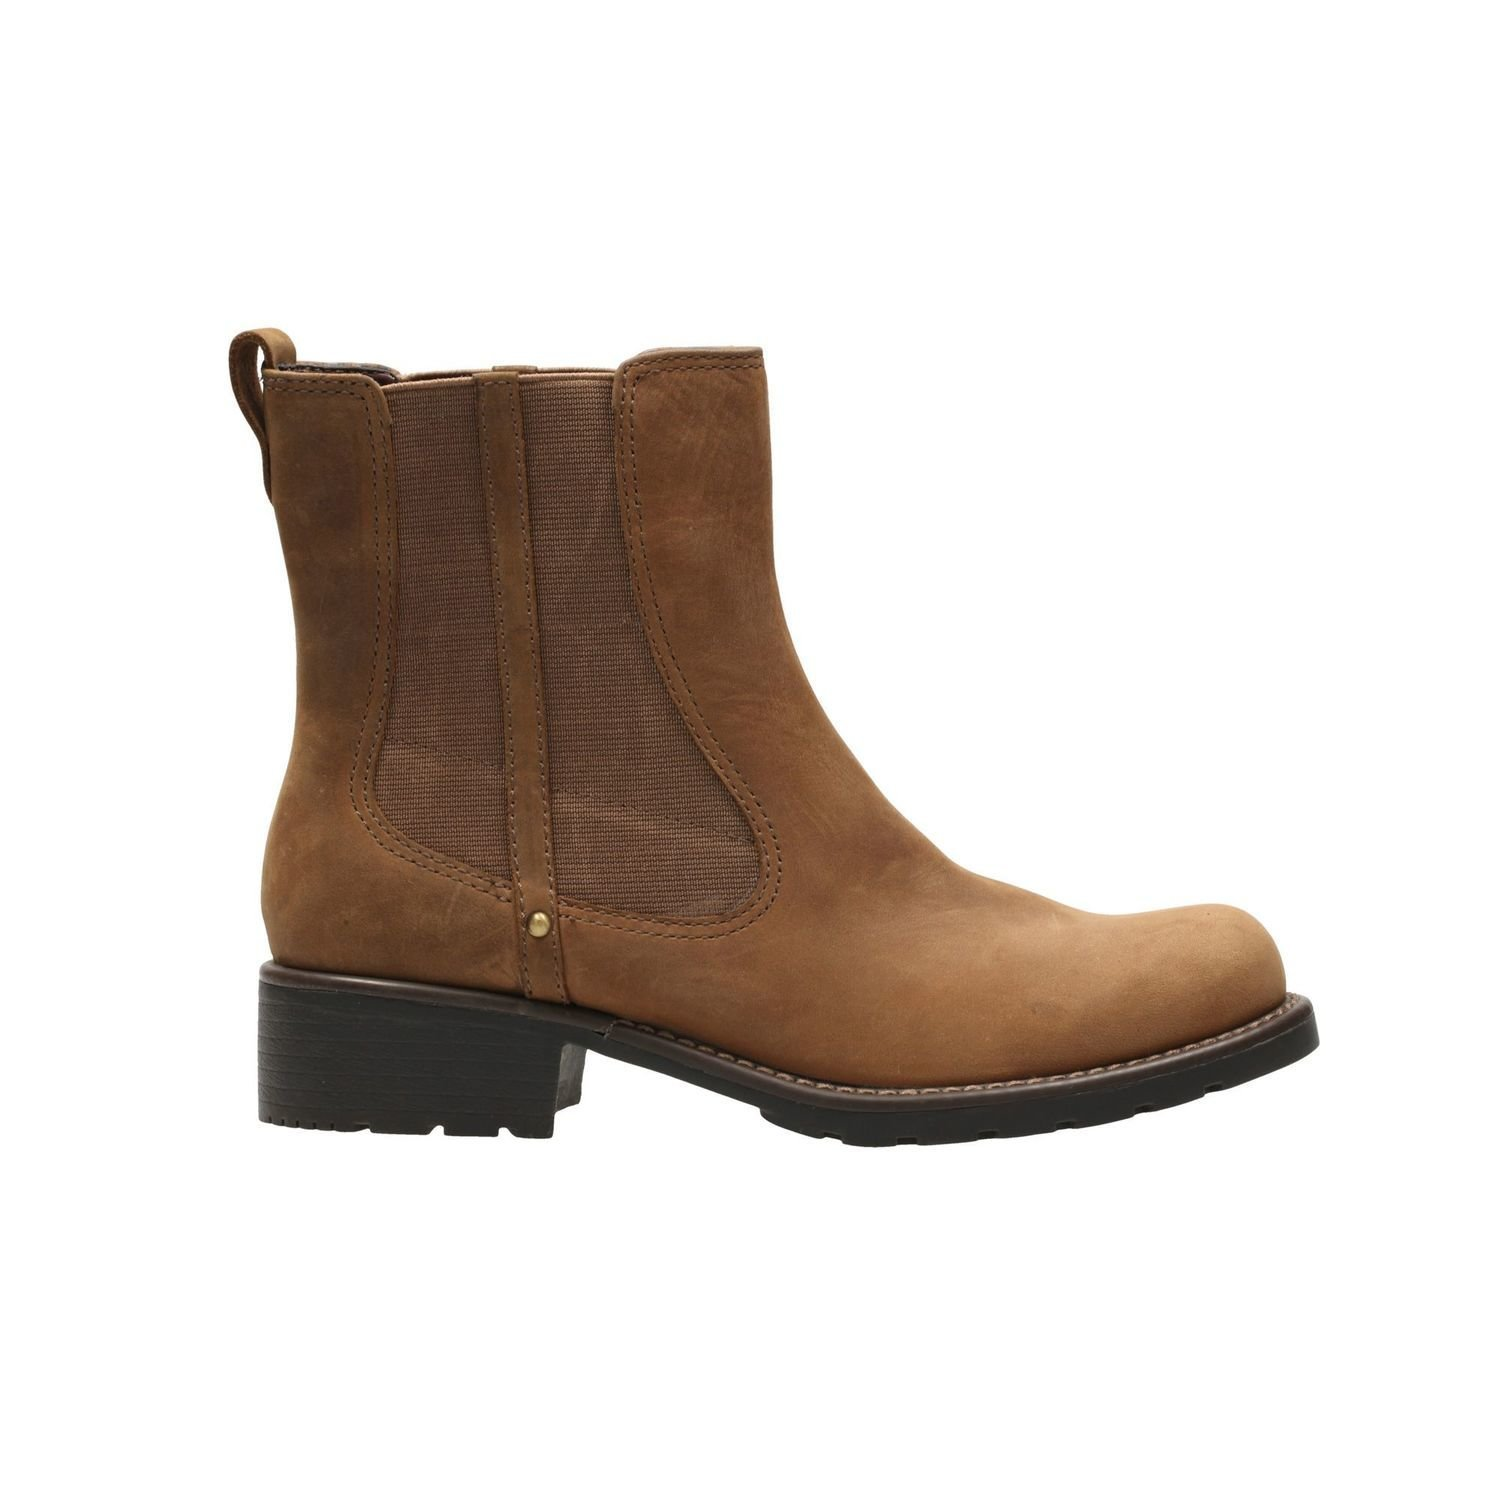 Botas Orinoco Club Marron Tabaco TN-2380263